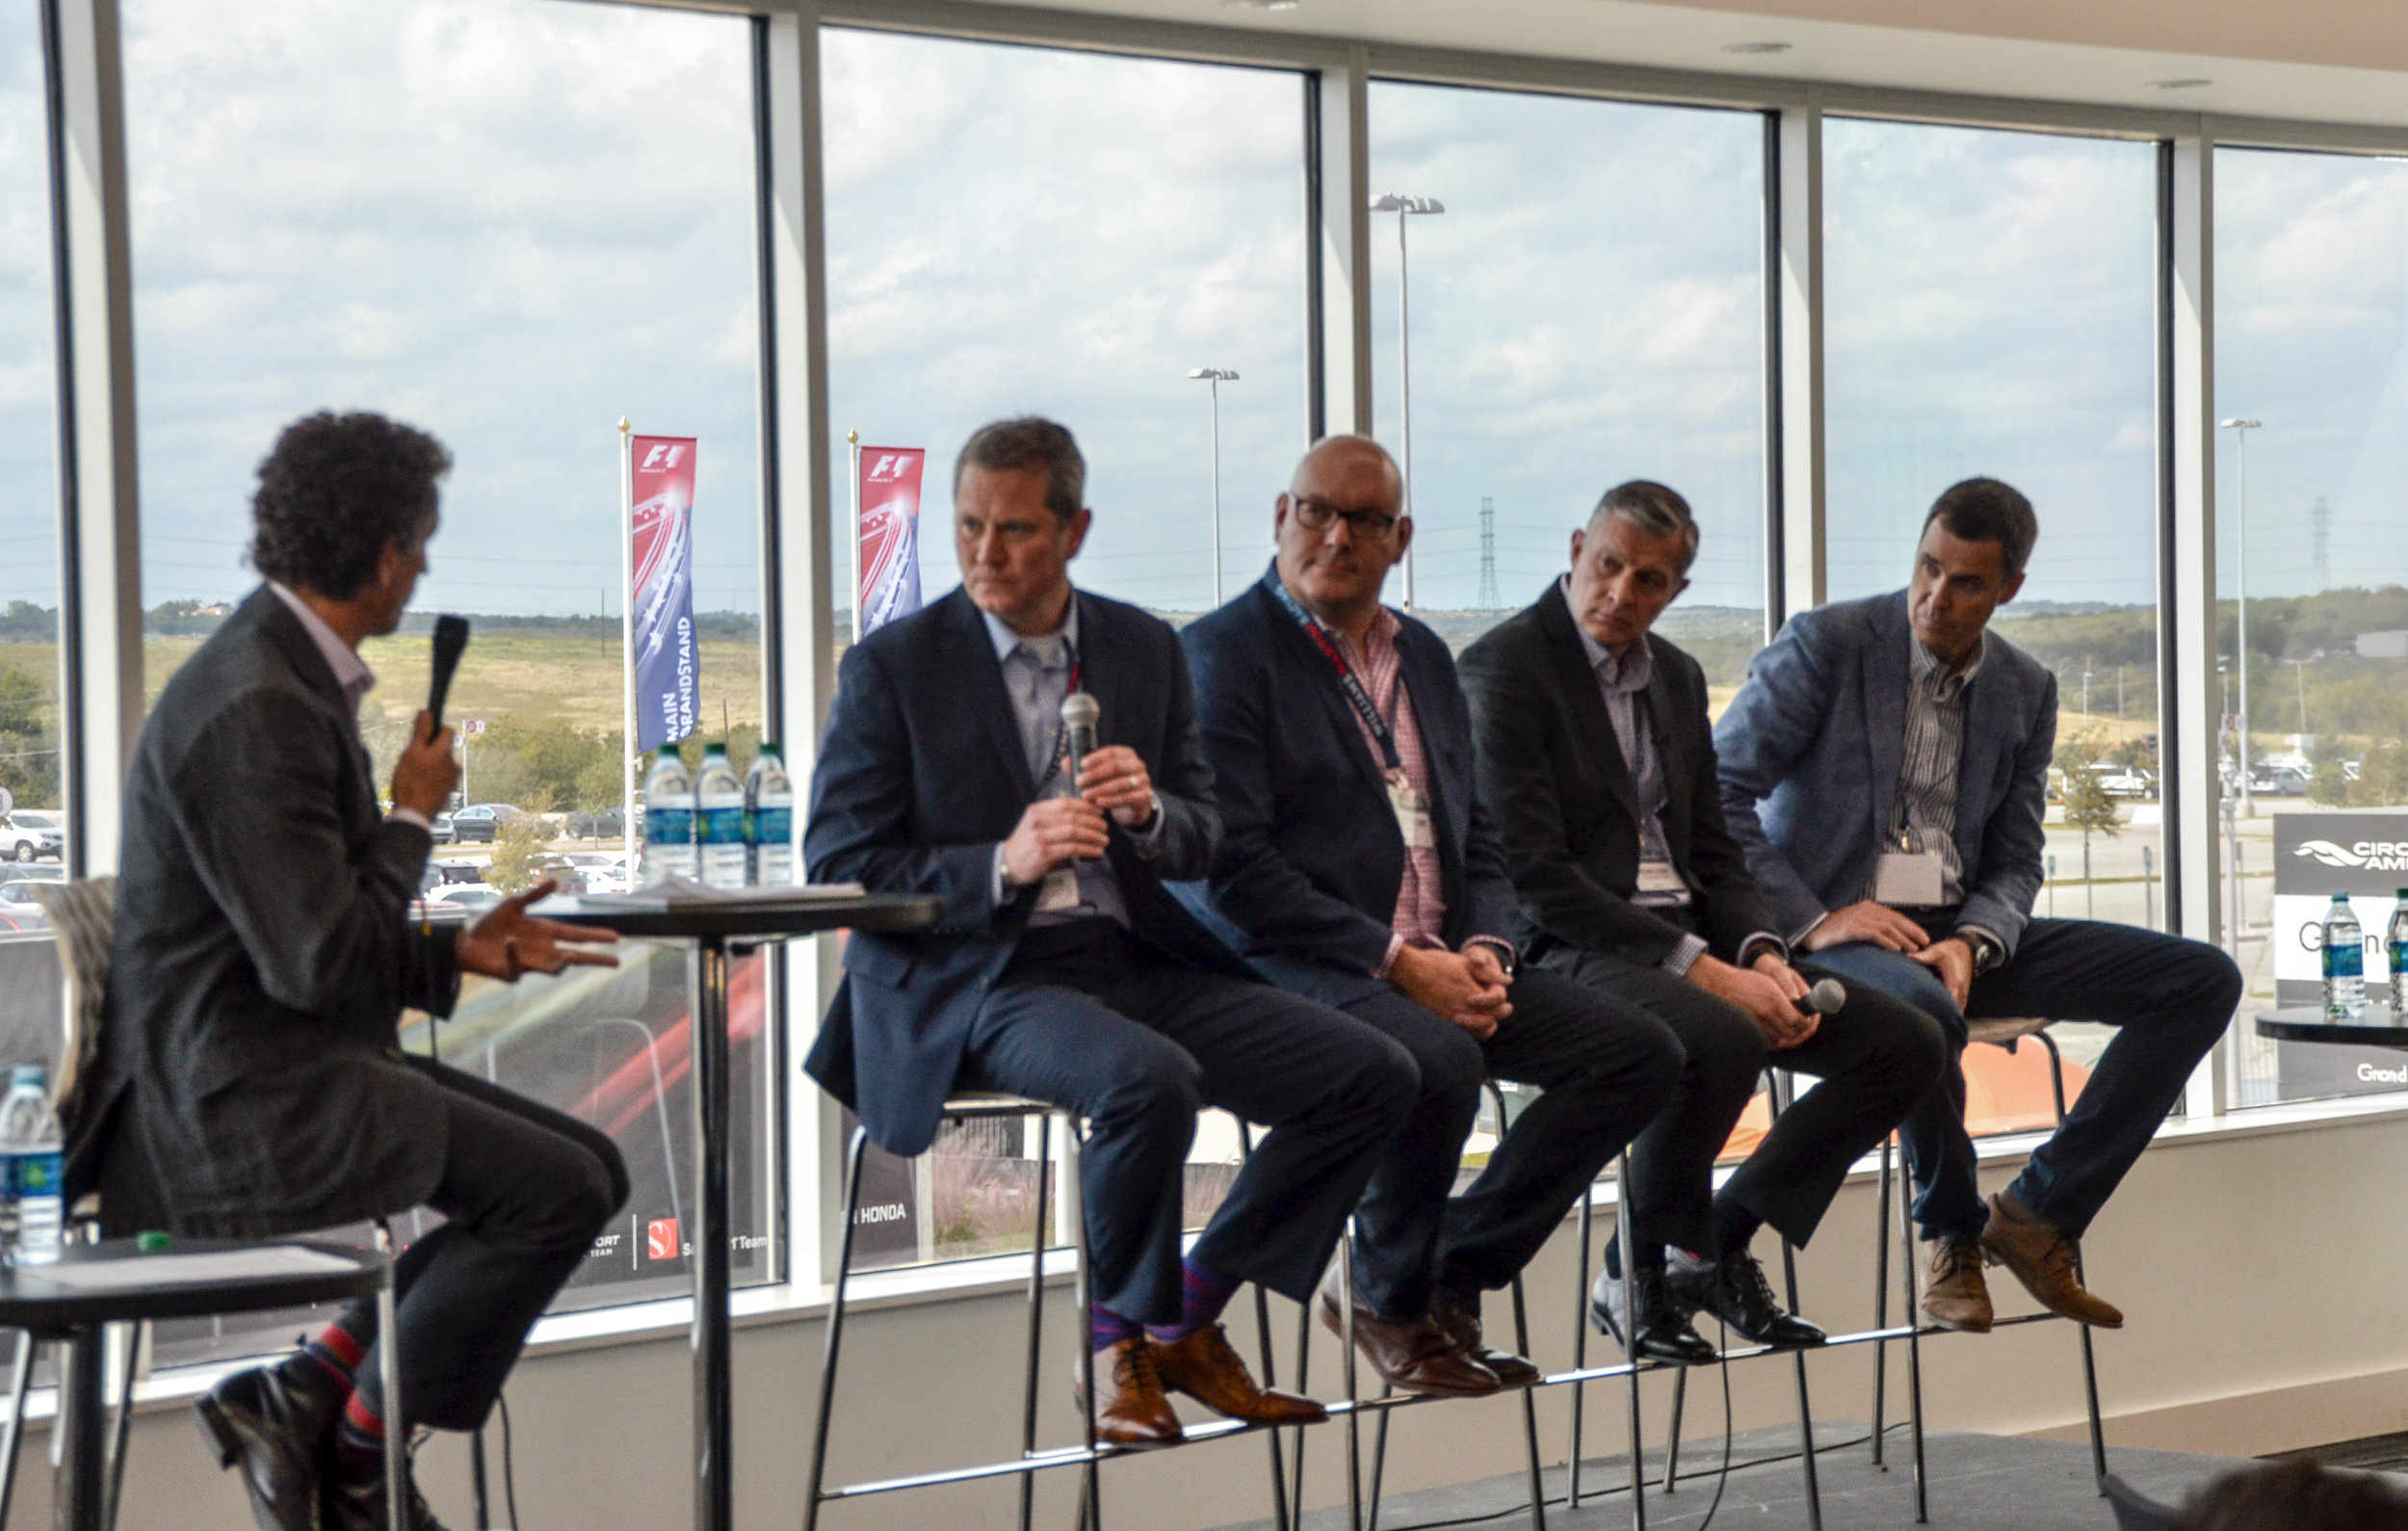 Panel: The Future of Sports & Entertainment Partnerships